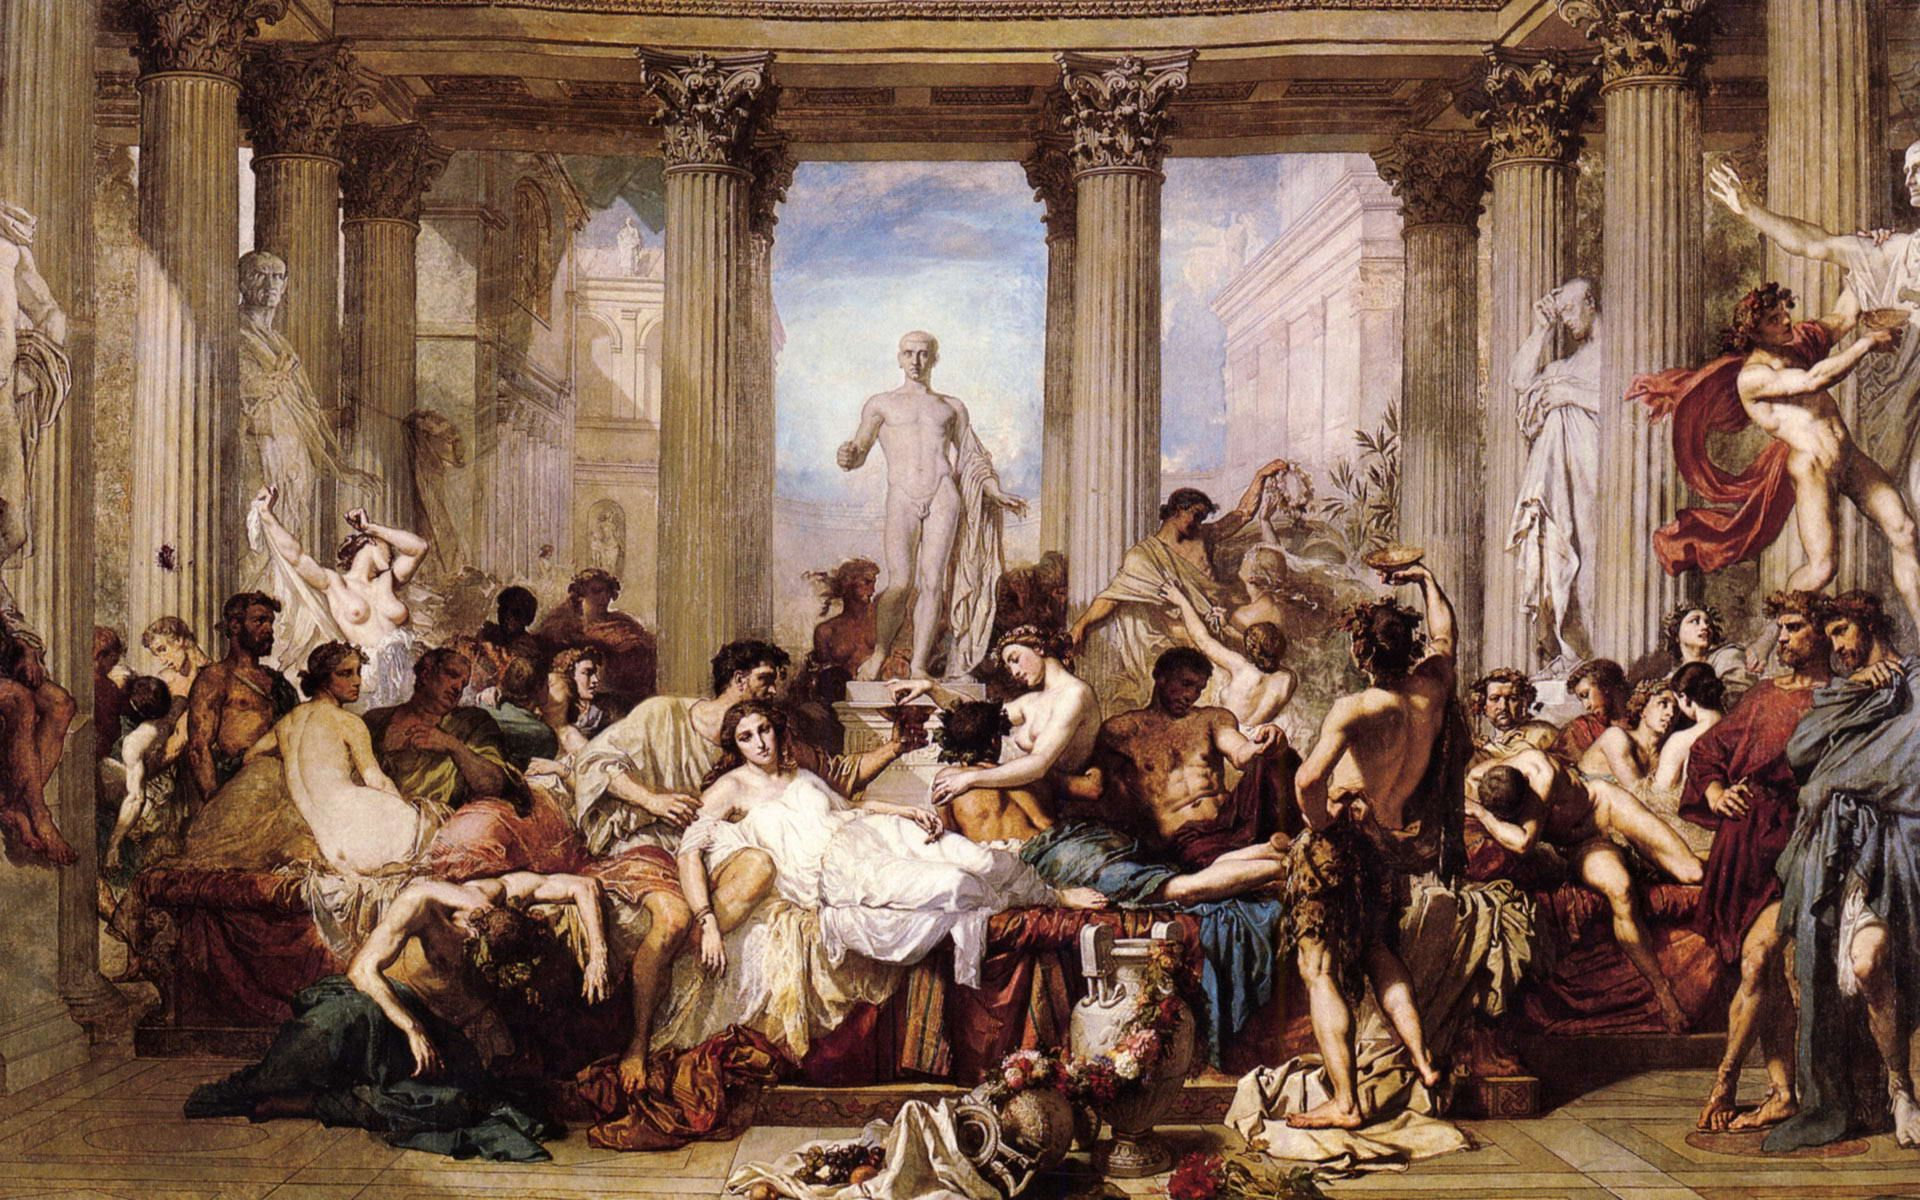 Ancient Greek Painting Wallpaper Greekpainting Myspace Thomas Couture Google Art Project Painting Wallpaper